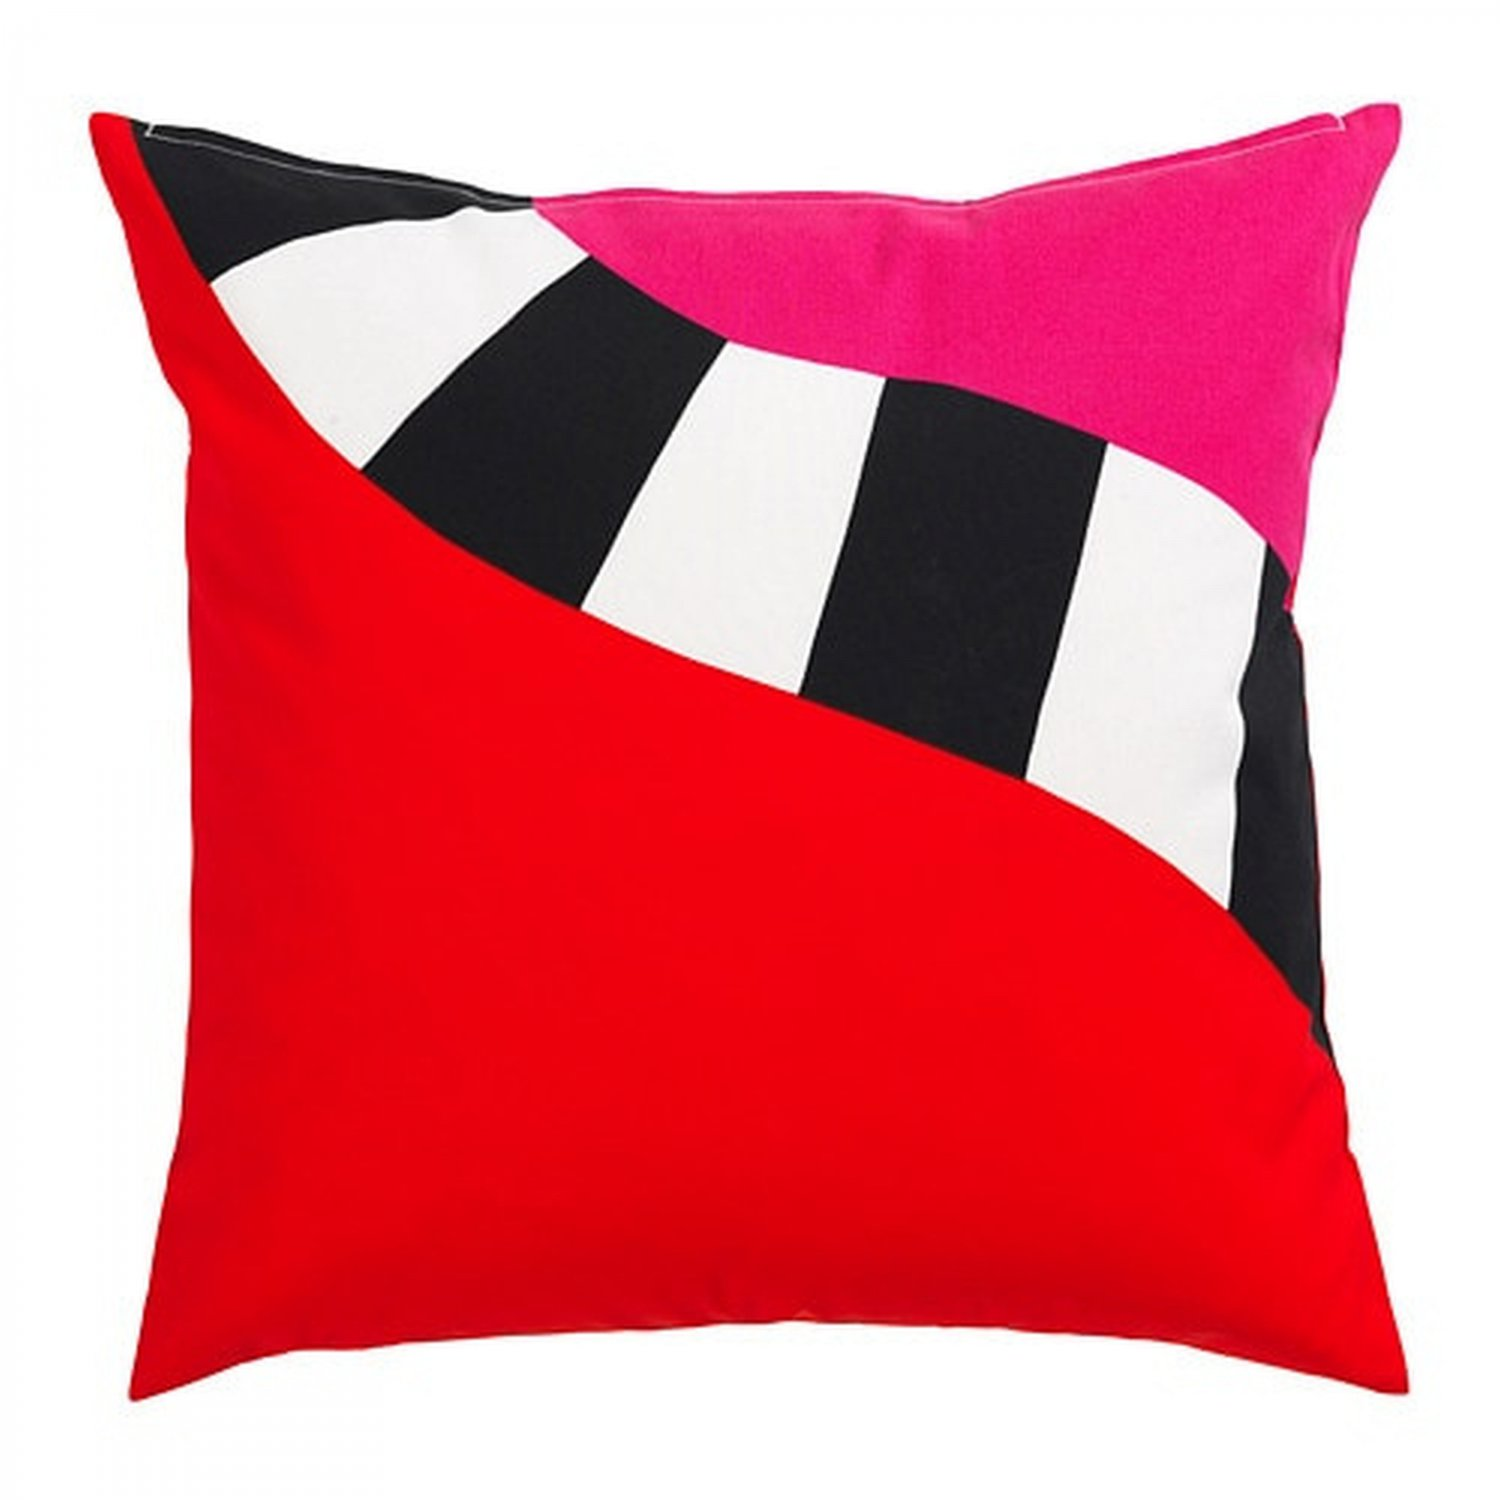 """IKEA Mosaikblad Cushion COVER Pillow Sham  20"""" x 20"""" Retro Pink Black Red Limited Edition"""